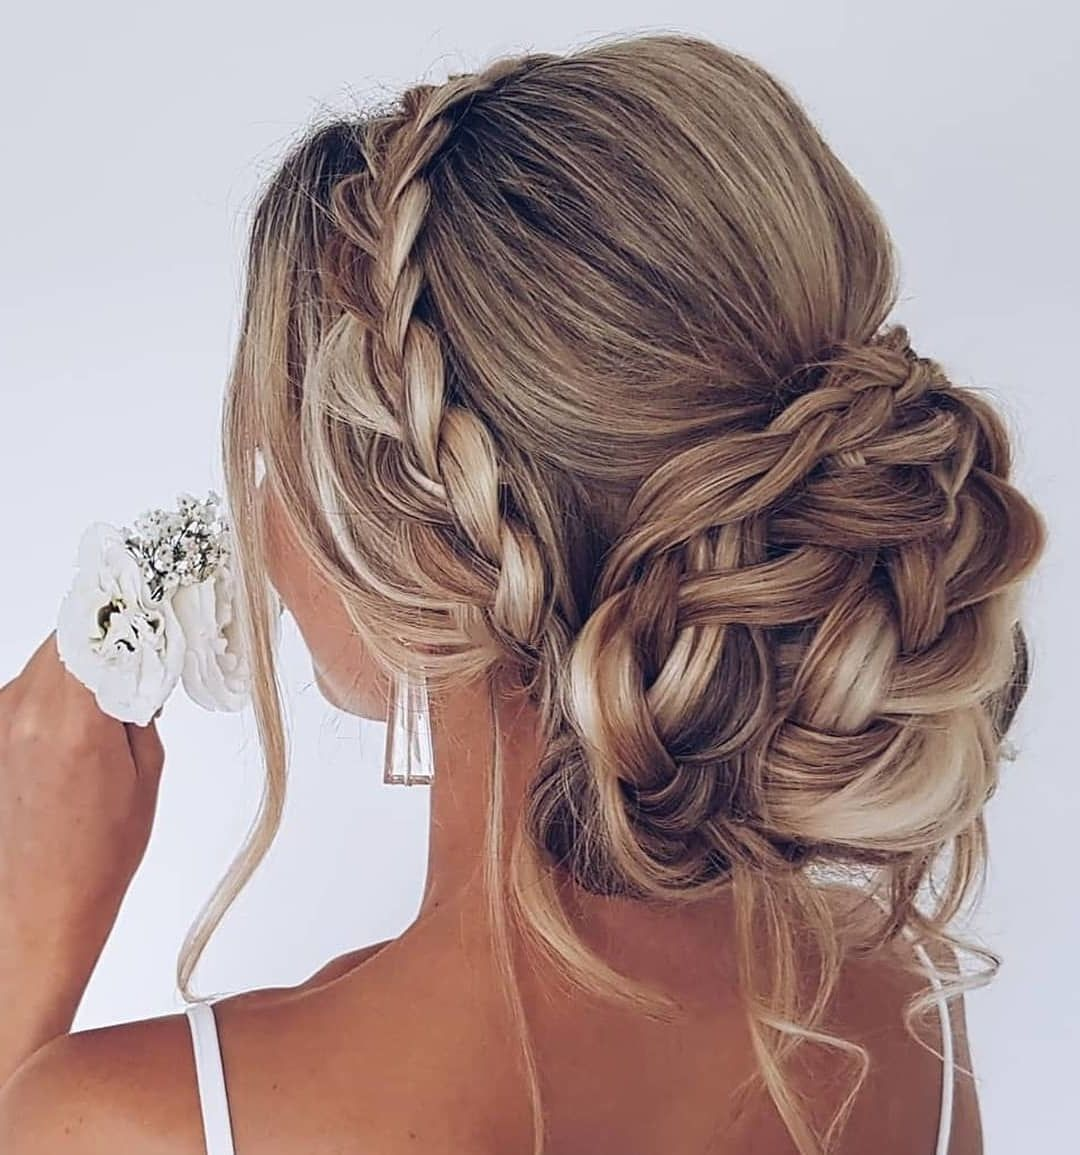 25 Updo Wedding Hairstyles For Long Hair Wedding Hairstyles For Long Hair Long Hair Wedding Styles Bride Hairstyles